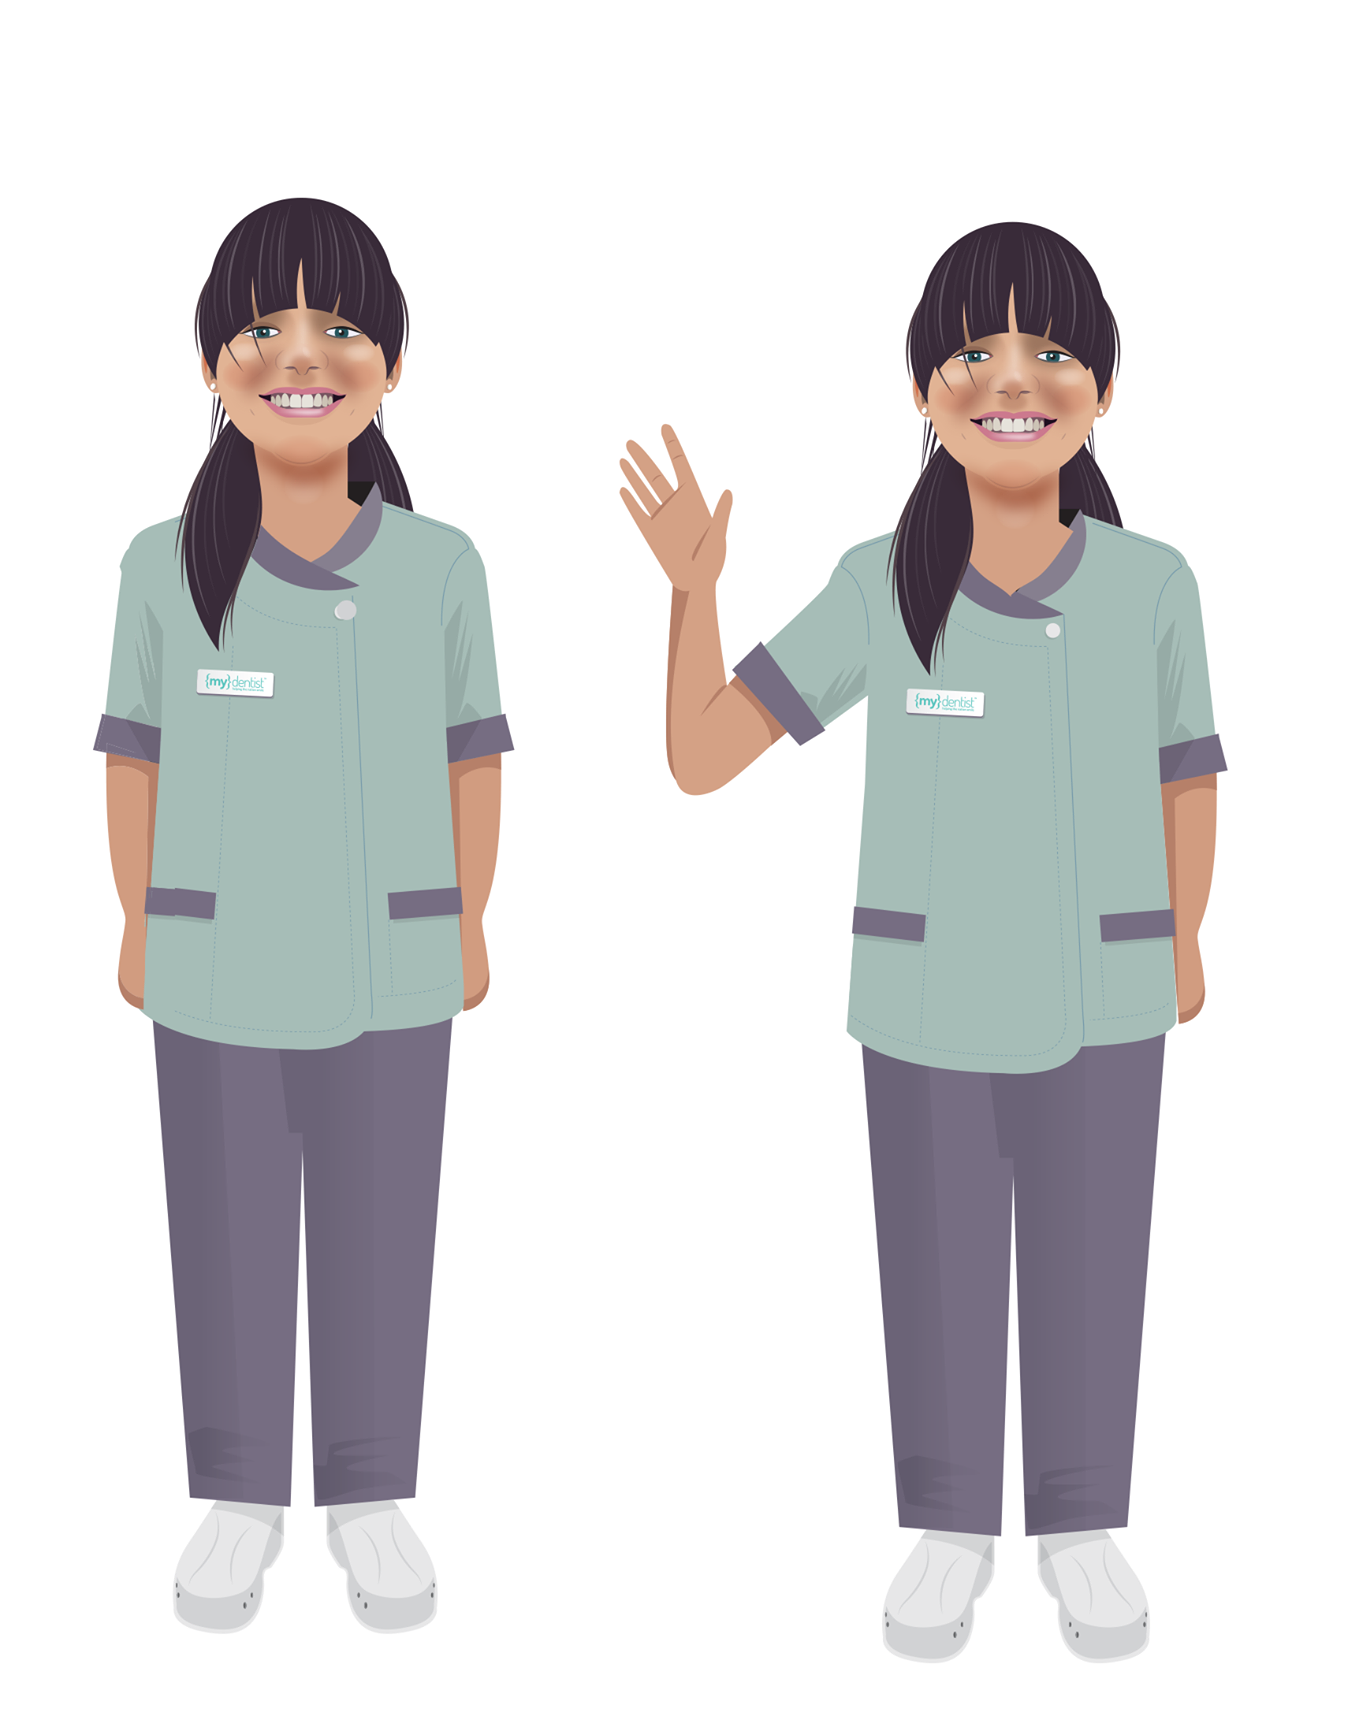 Our Dental Nurse Hero for July is….